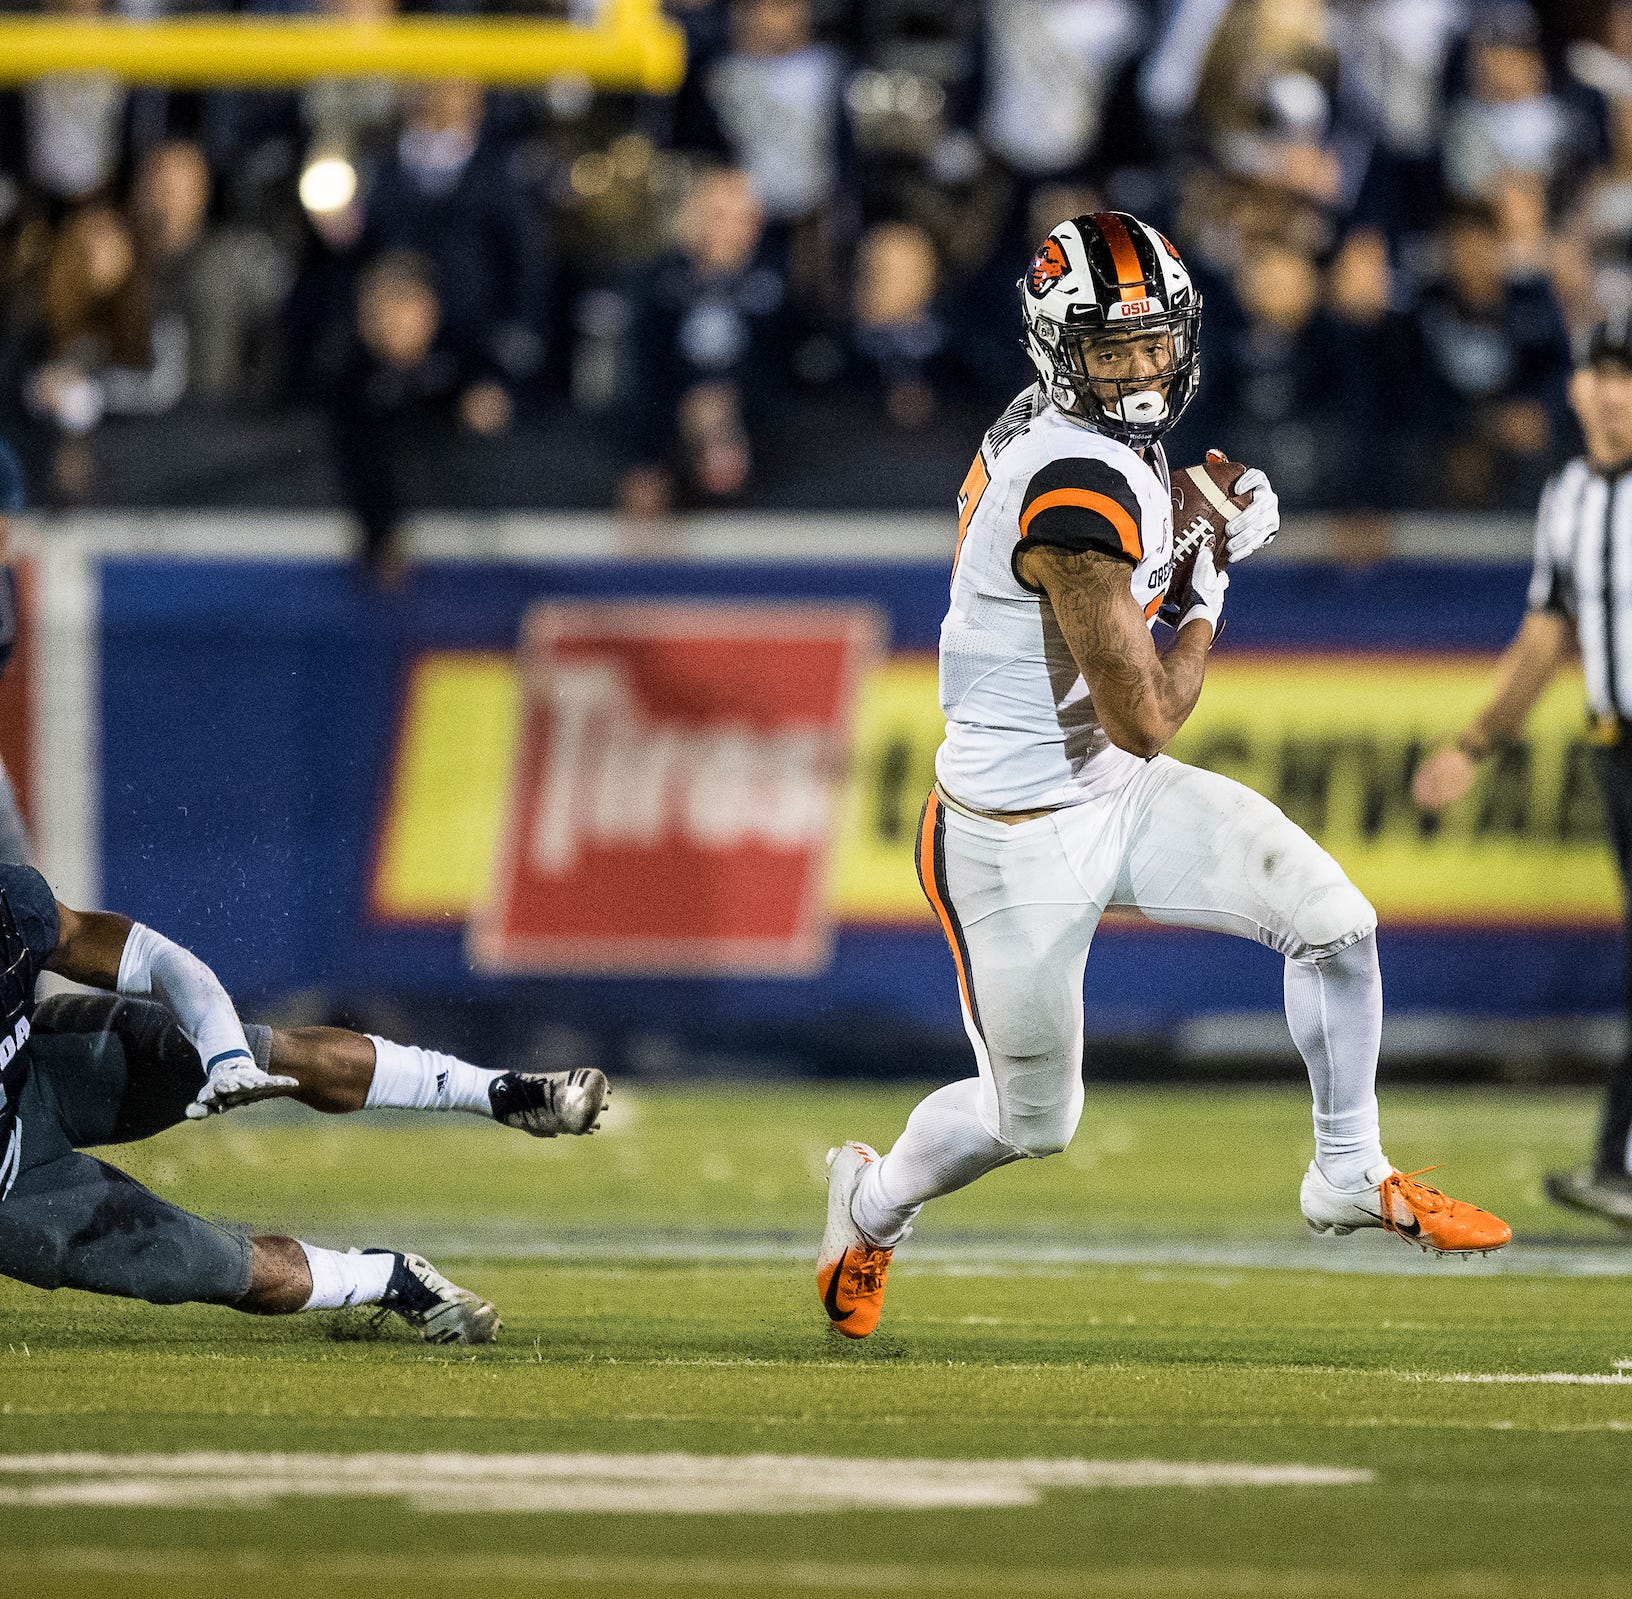 Road losing streak continues, but Oregon State making strides